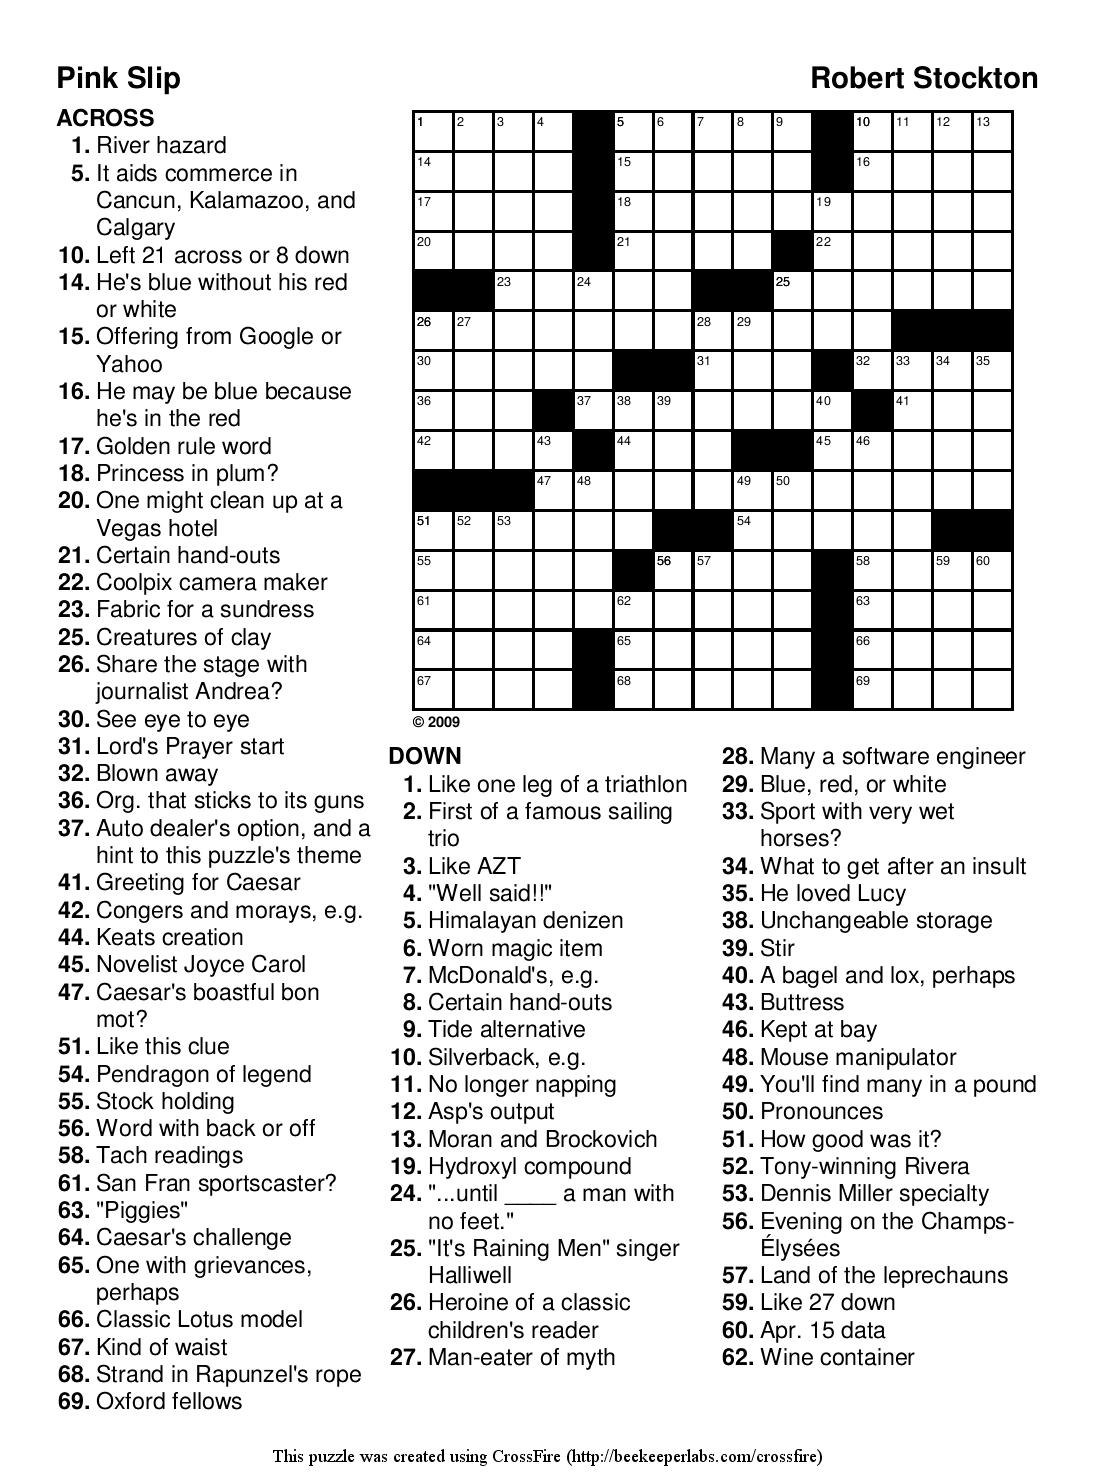 Printable Puzzles For Adults | Easy Word Puzzles Printable Festivals - Printable Crossword Puzzles Easy Adults